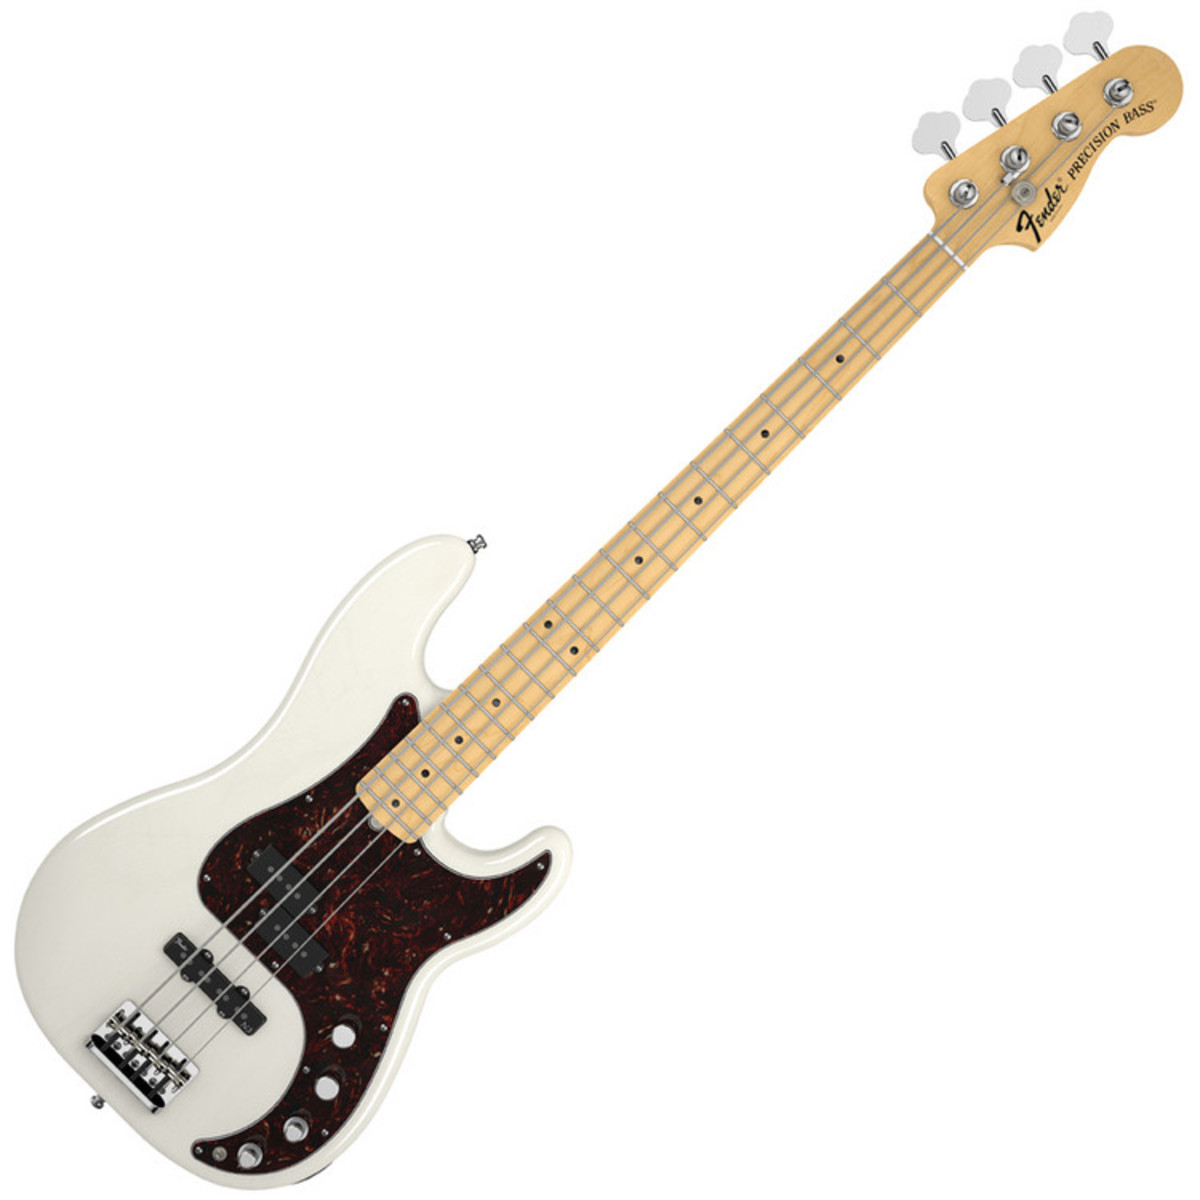 fender american deluxe precision bass ash mn white blonde at gear4music. Black Bedroom Furniture Sets. Home Design Ideas